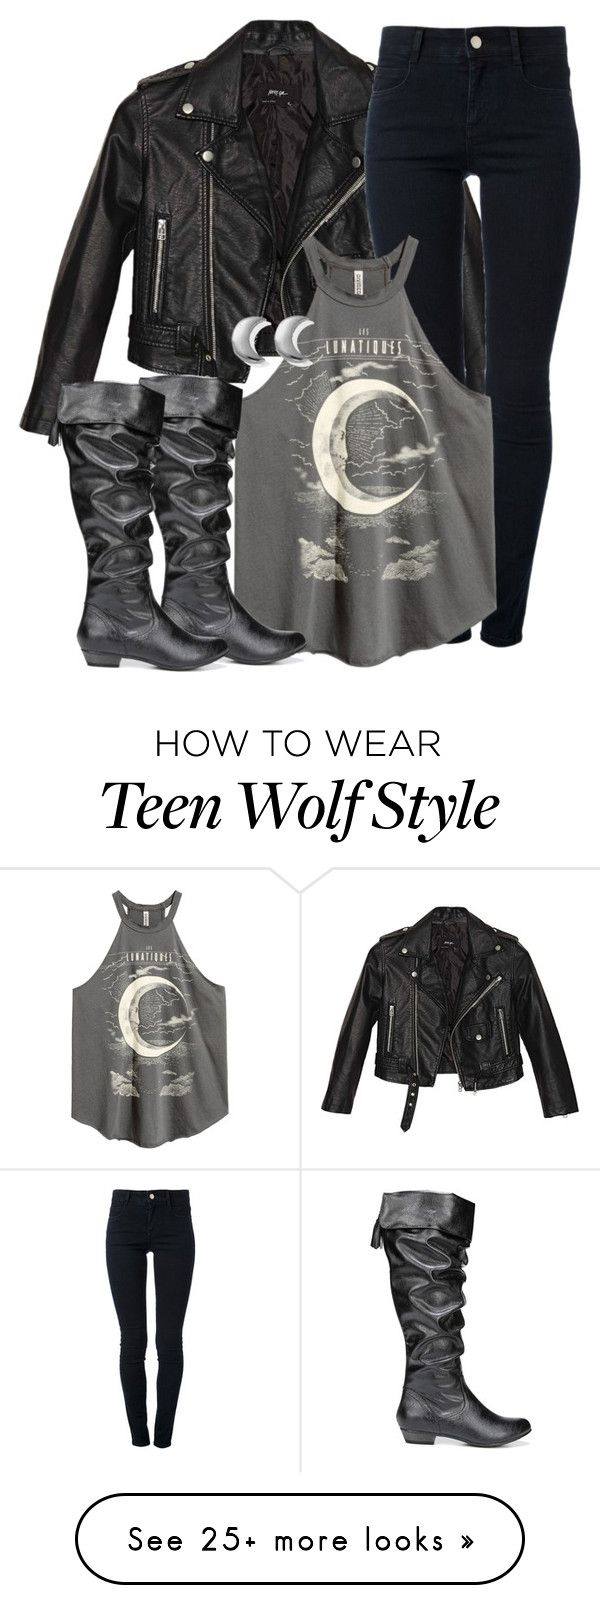 """Derek Inspired Outfit - Teen Wolf"" by clawsandclothes on Polyvore featuring Nasty Gal, STELLA McCARTNEY, Fergie and ChloBo"